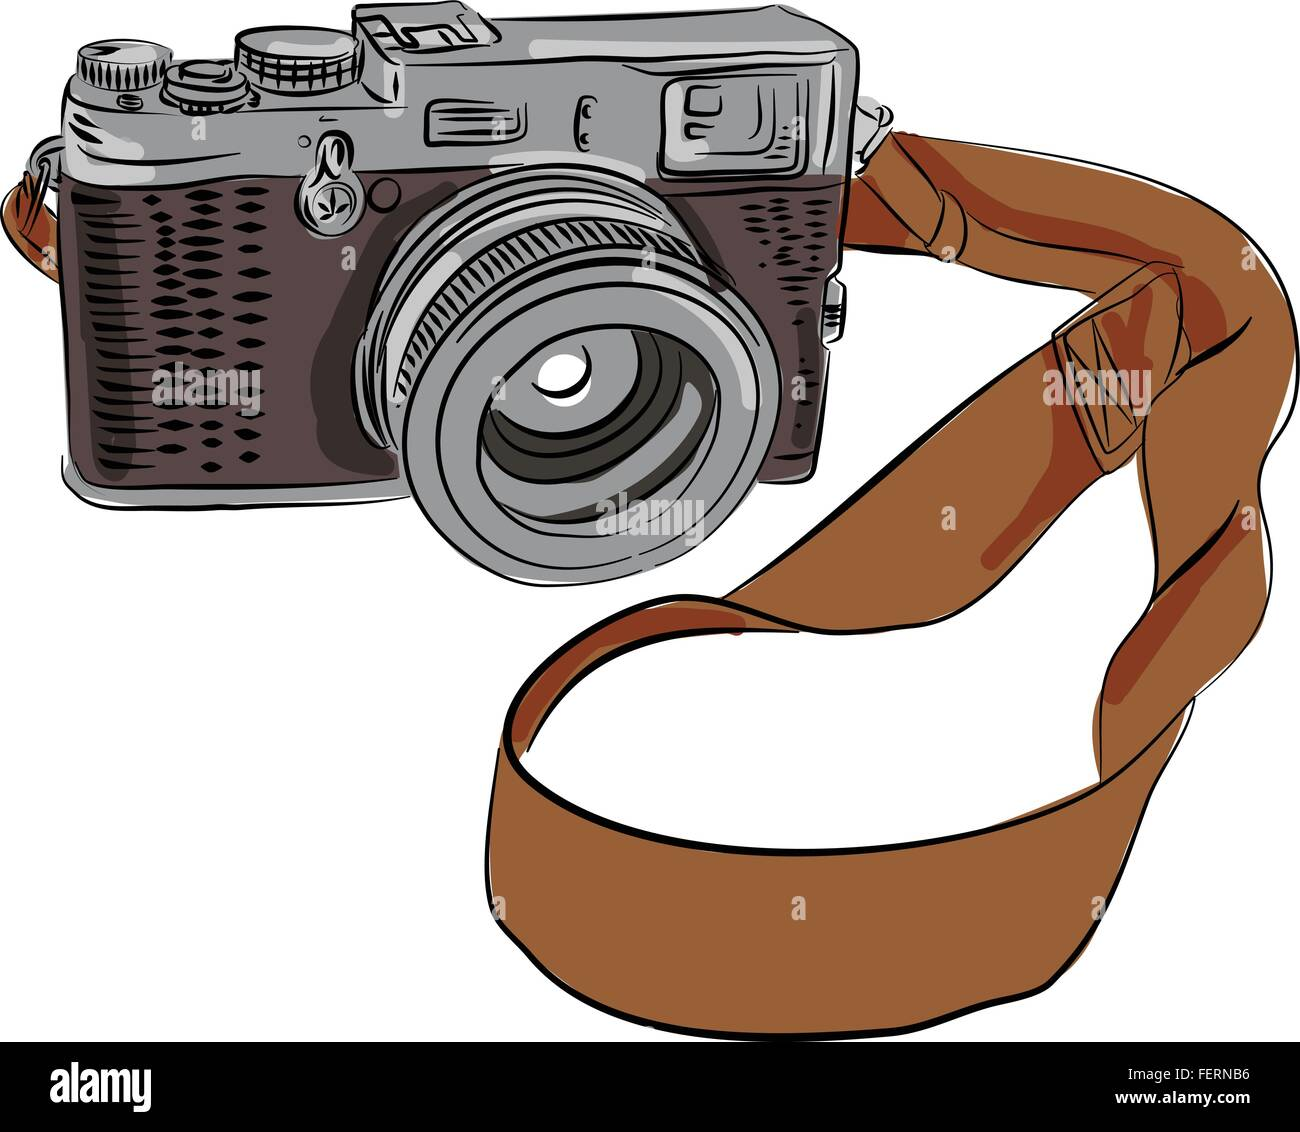 Drawing sketch style illustration of a vintage camera with srap viewed from front set on isolated white background. Stock Vector